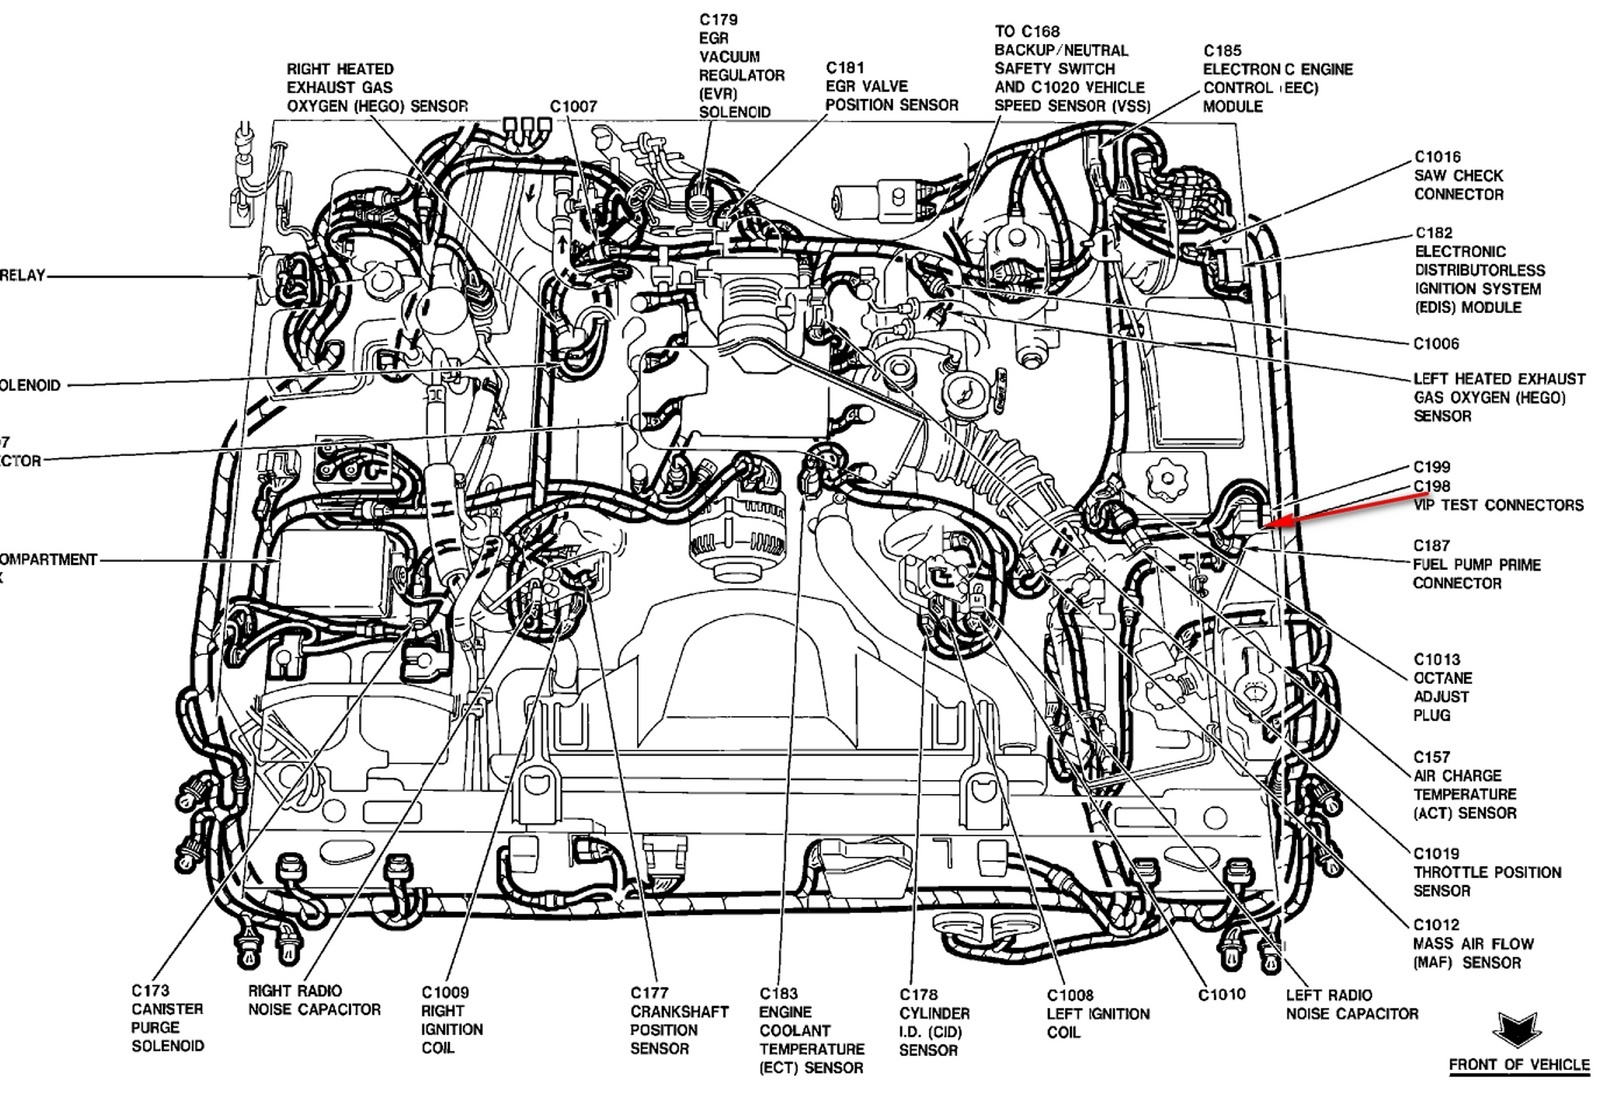 2002 Chevy Impala Wiring Diagram. Chevy. Wiring Diagram Images